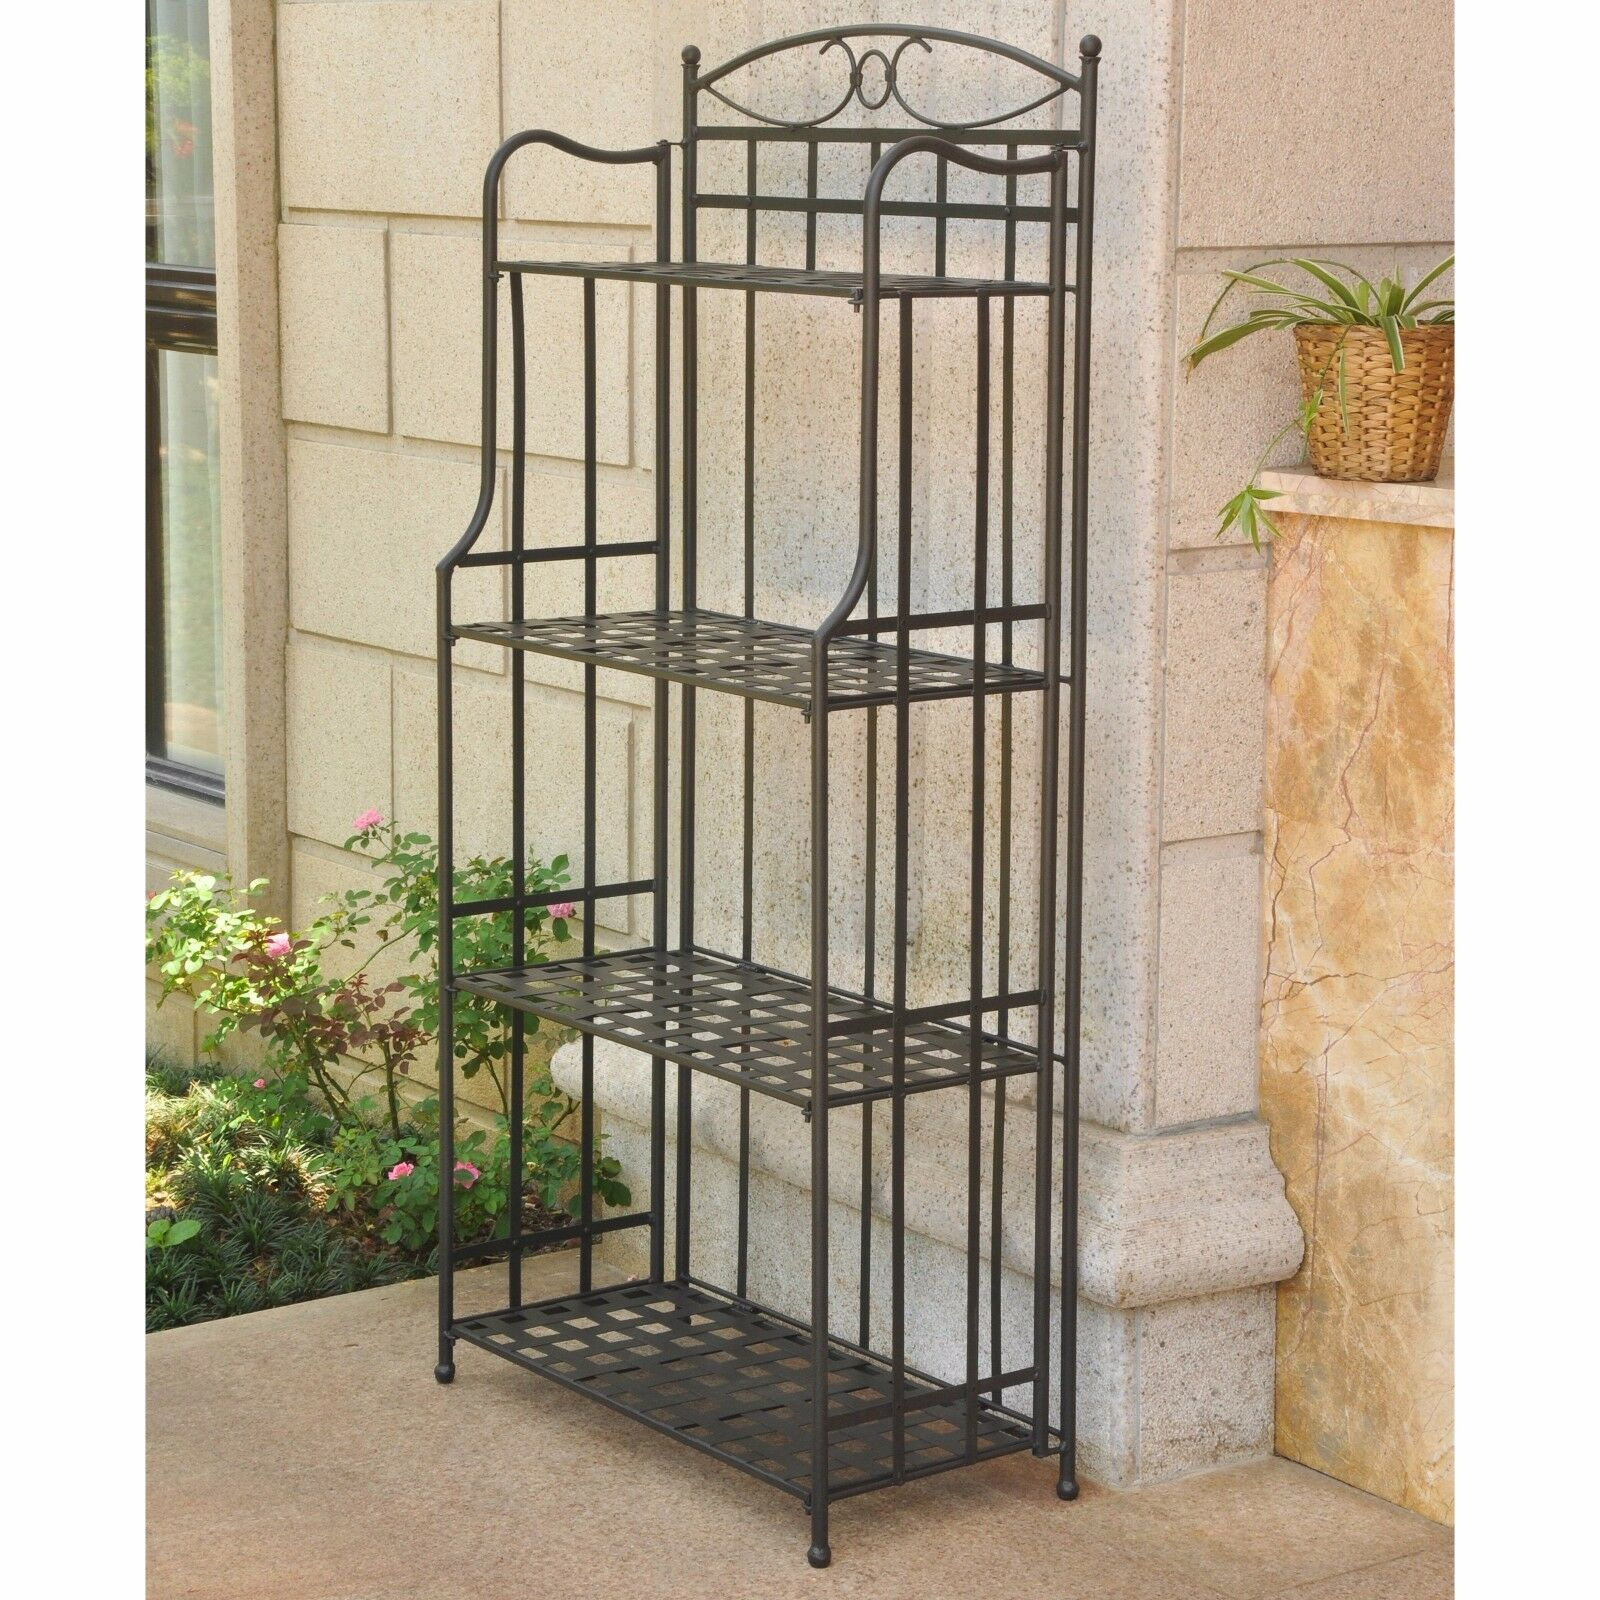 Outdoor Bakers Rack Plant Stand Patio Wrought Iron Shelves Garden Black 1  Of 2Only 1 Available ...